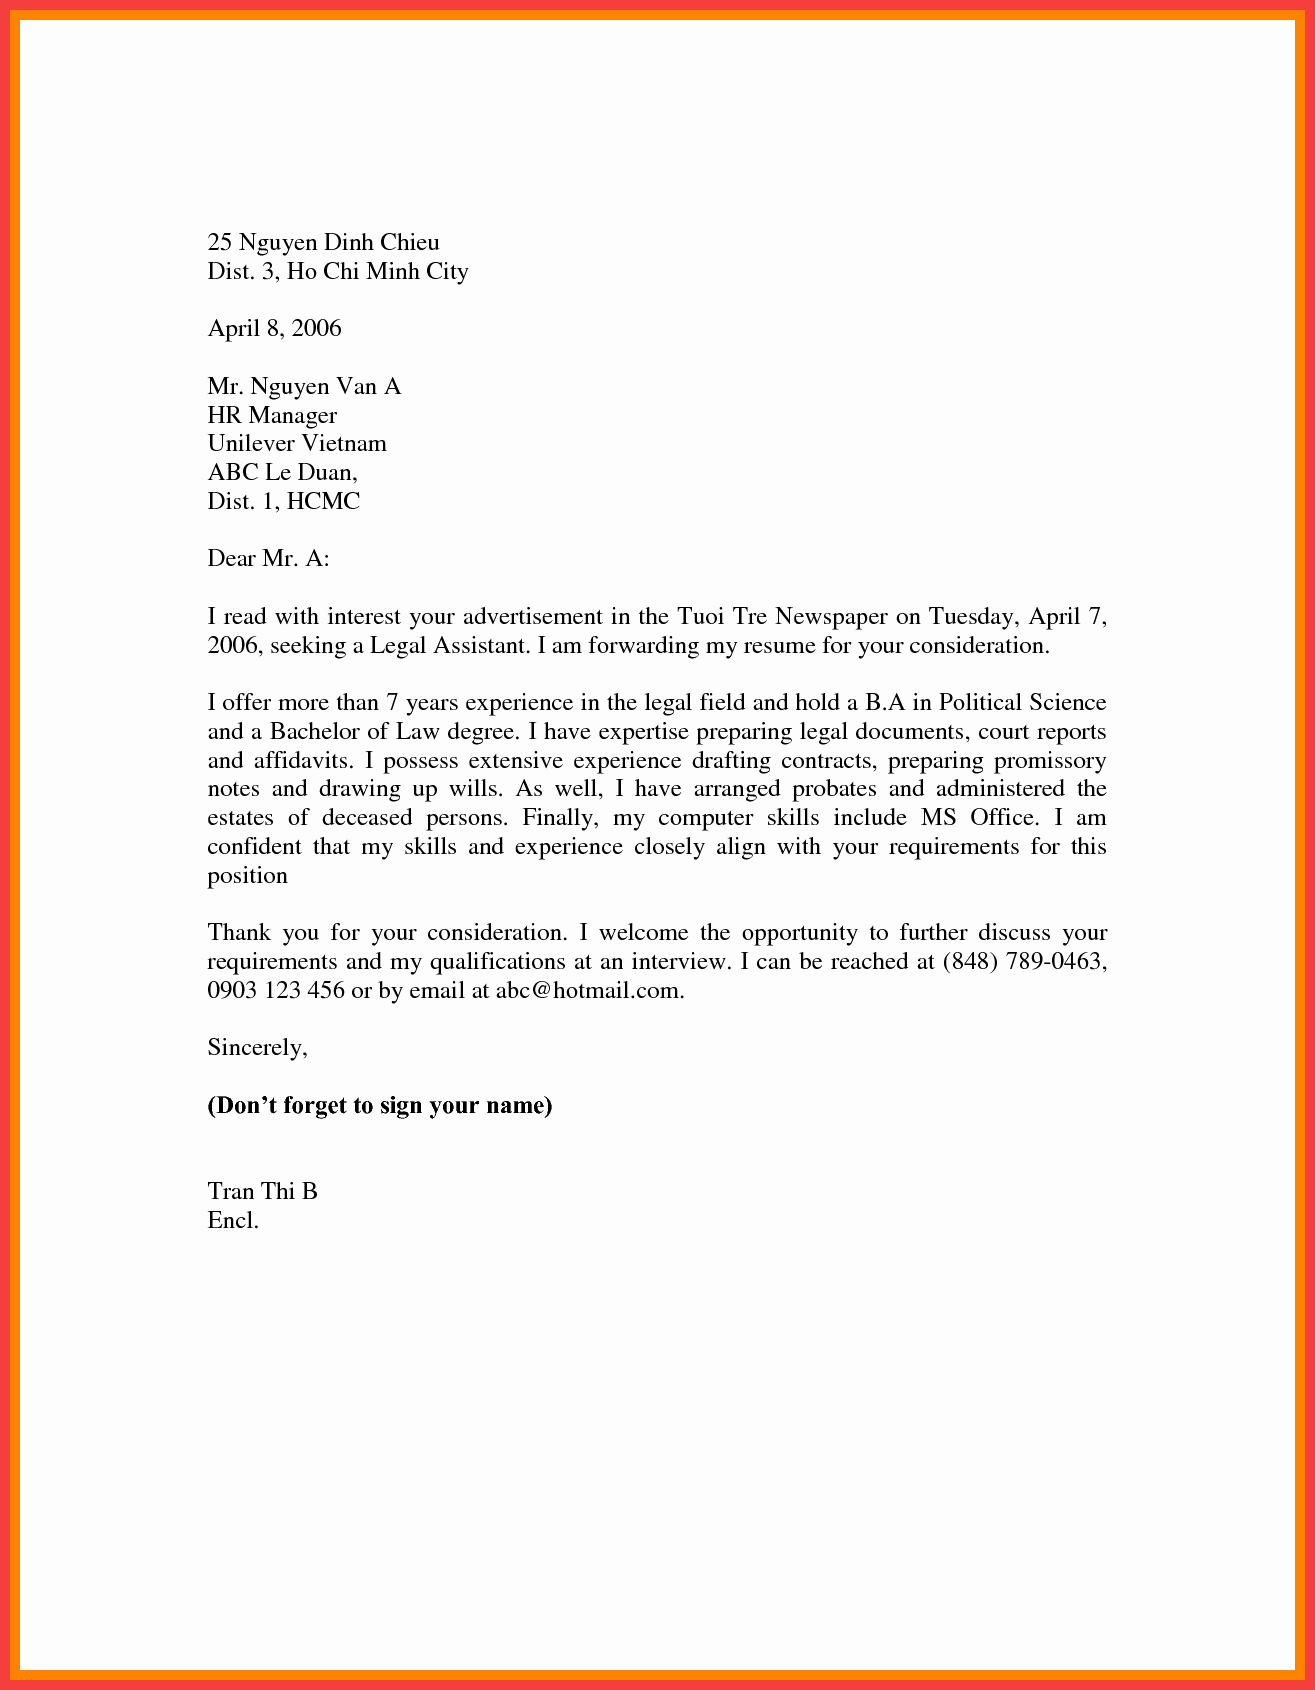 Sample Of Simple Cover Letter New Basic Cover Letter Template